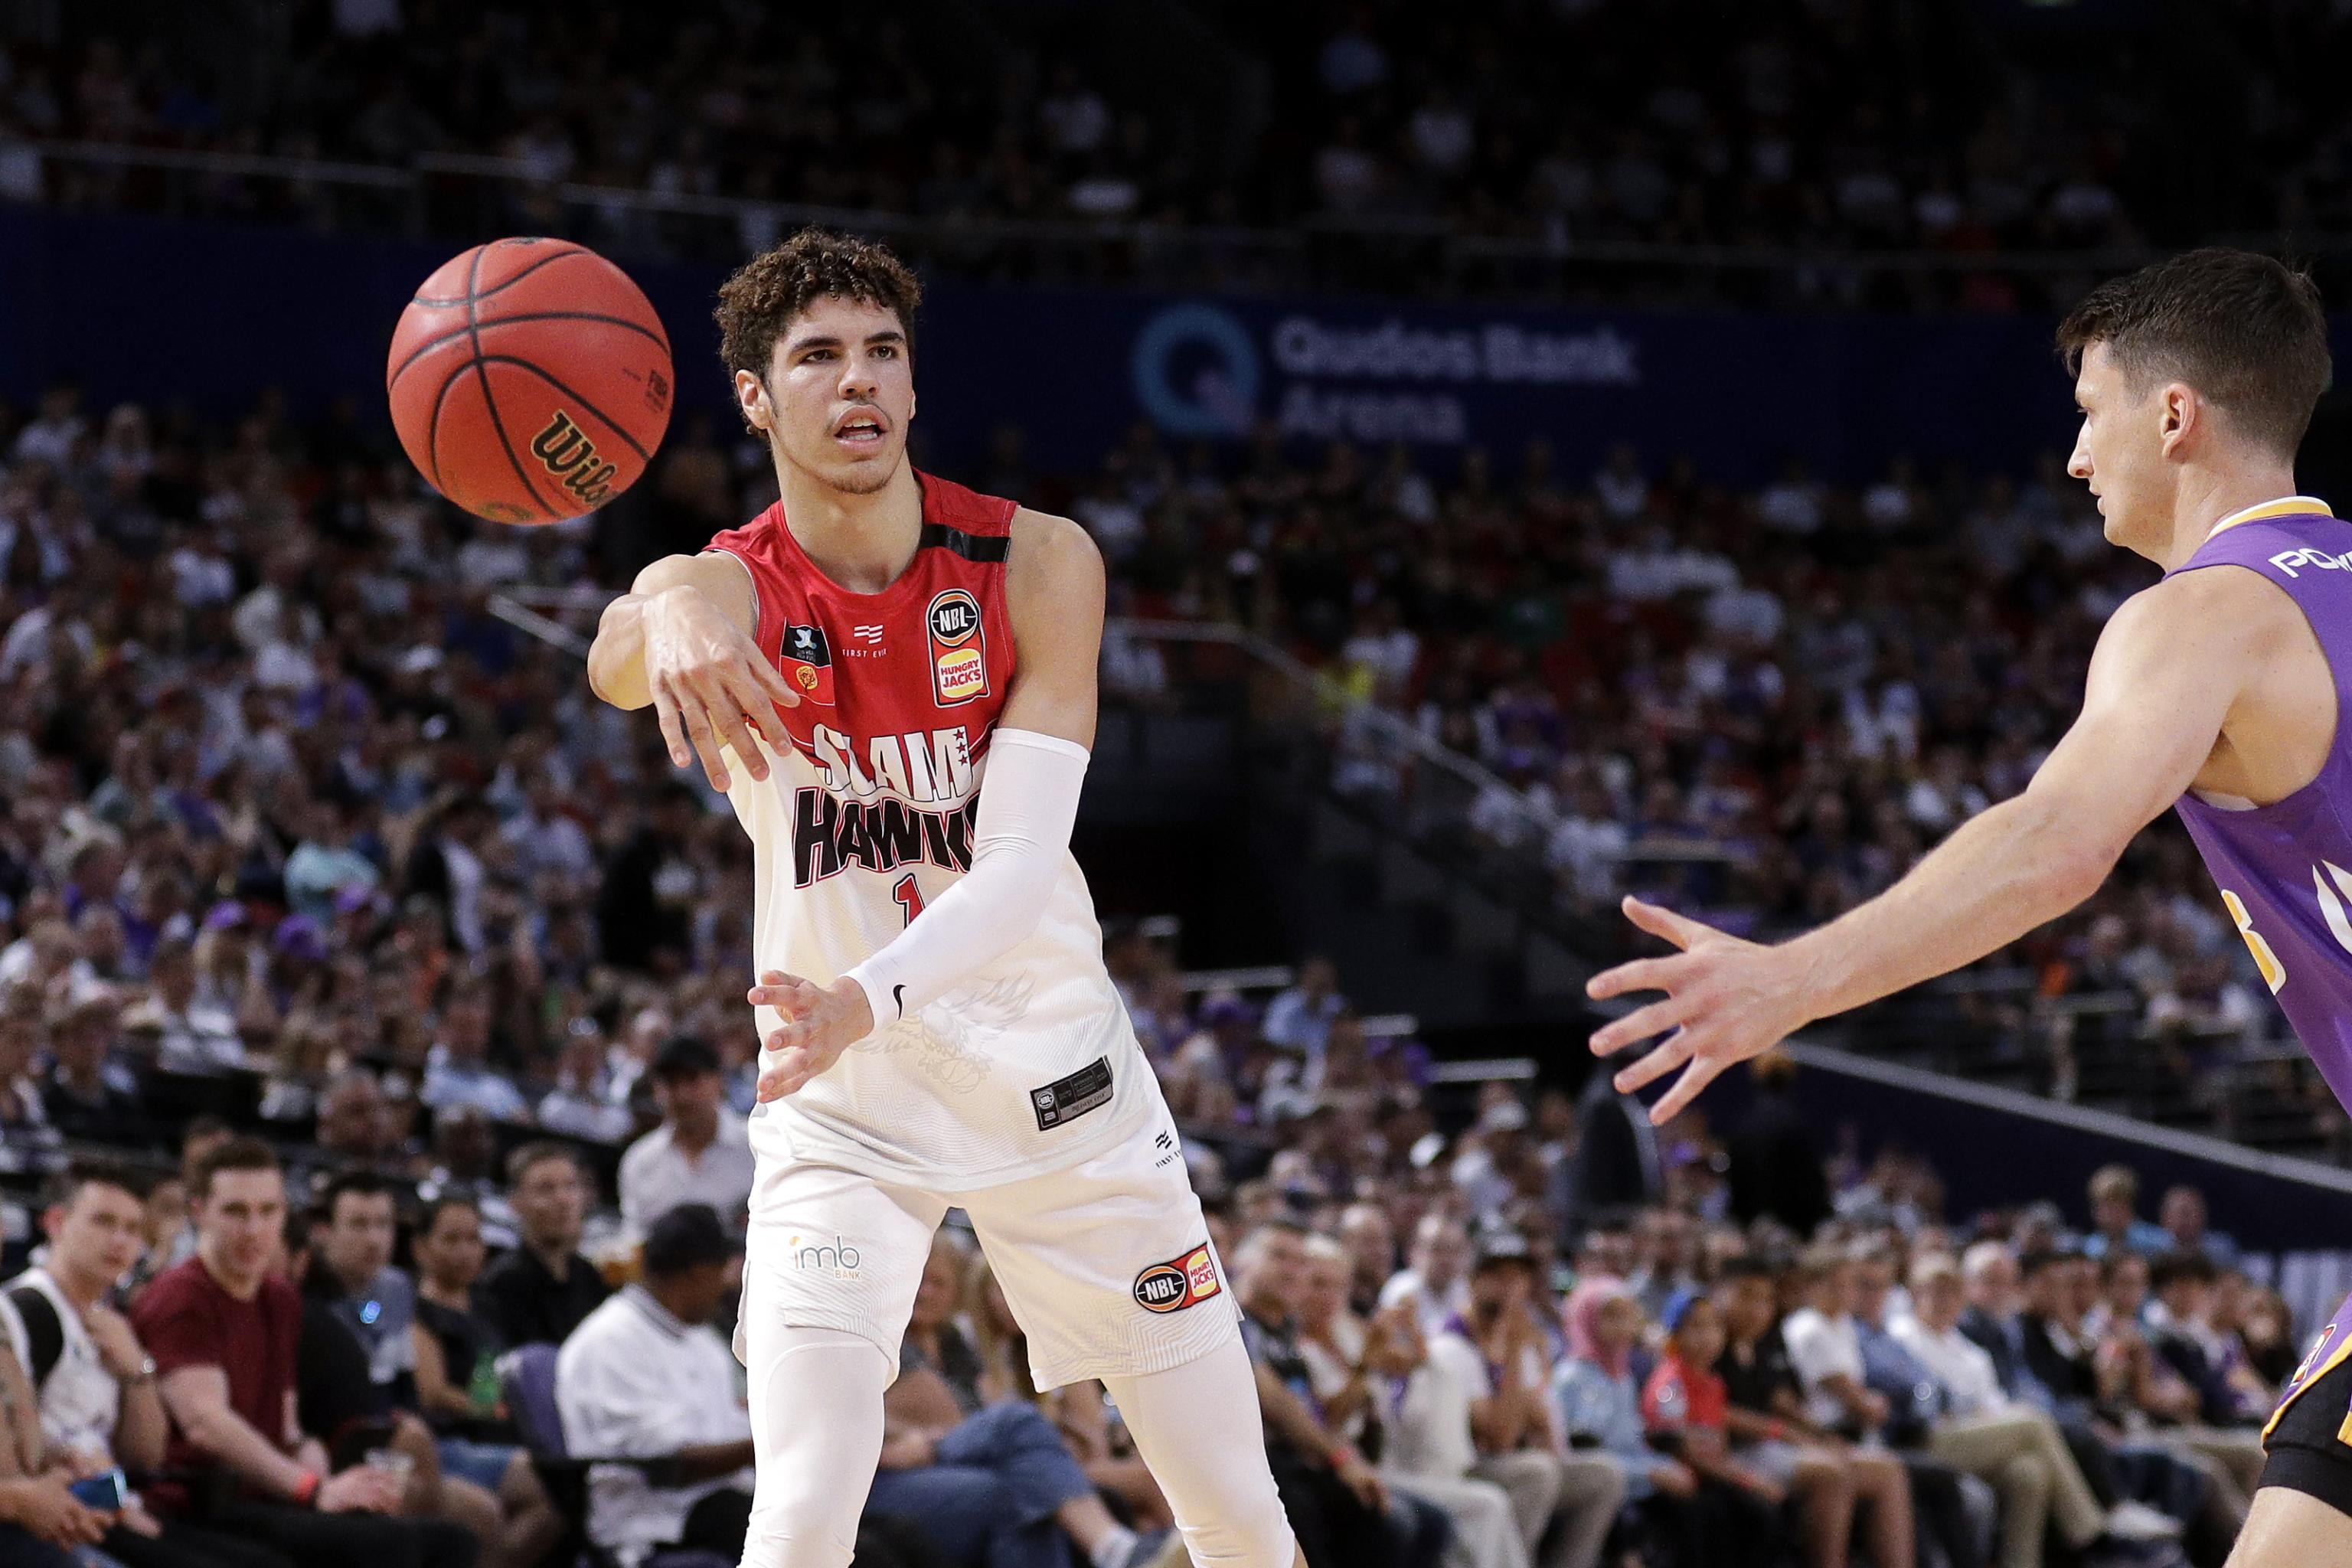 Lamelo Ball S Draft Scouting Report Pro Comparison Updated Hornets Roster Bleacher Report Latest News Videos And Highlights Lamelo ball height weight and body details lamelo ball height: lamelo ball s draft scouting report